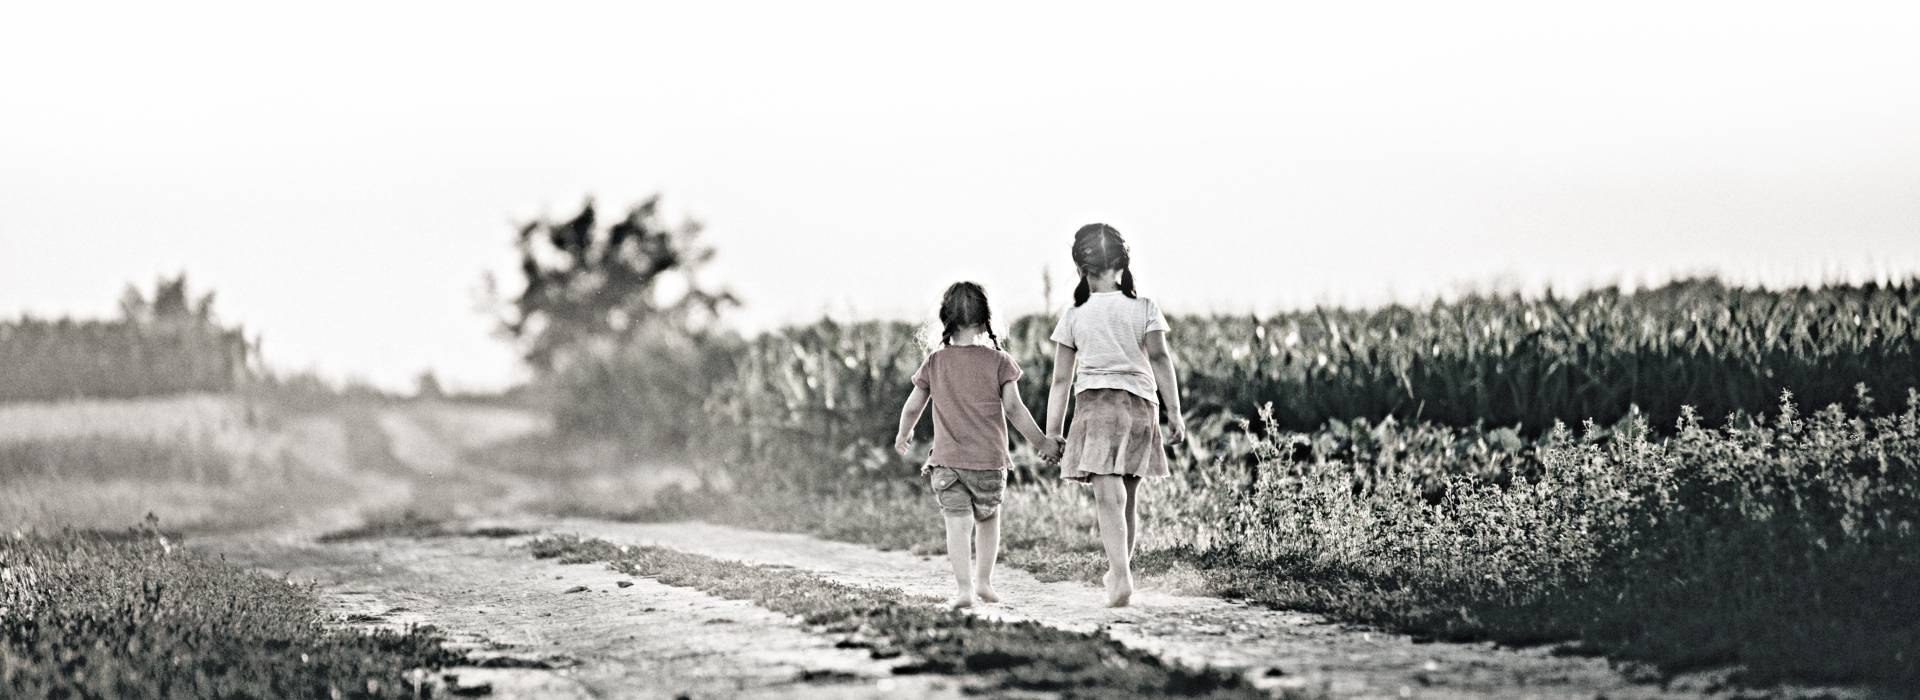 Two sisters walk down a dirt road near a corn field.